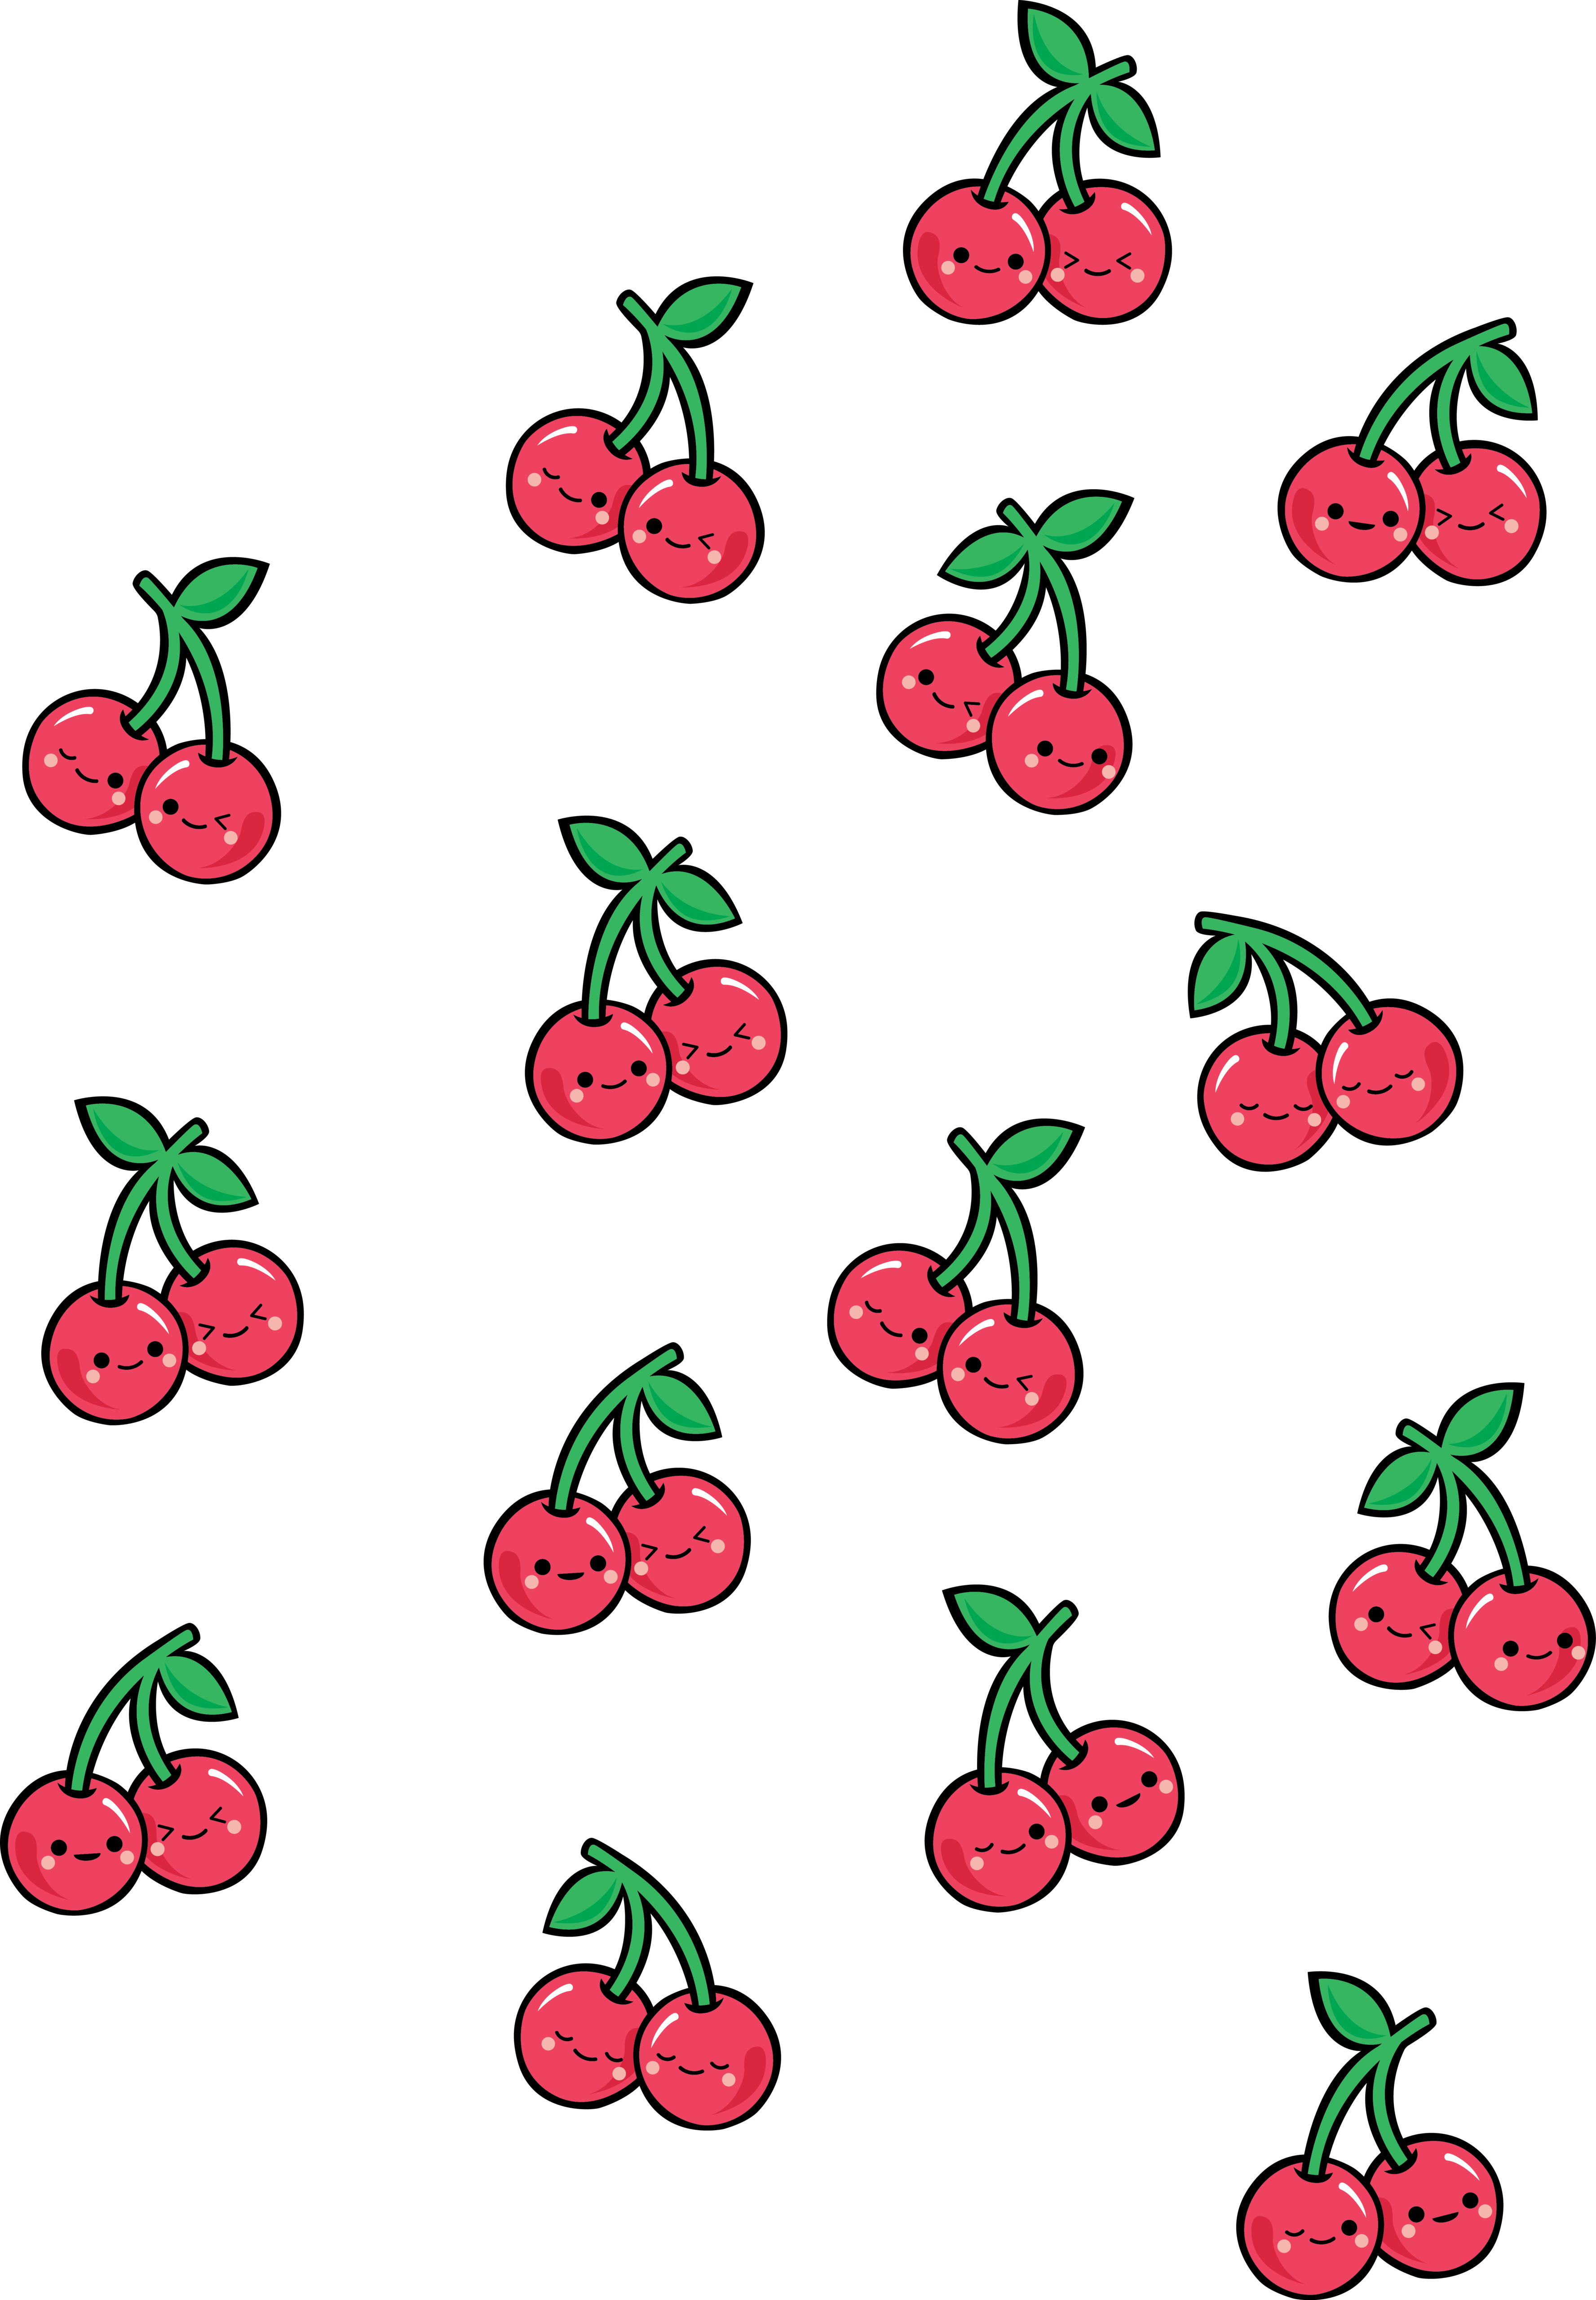 Cherry Pattern Casetify Iphone Art Design Illustration Fruit In 2021 Fruit Wallpaper Cute Laptop Wallpaper Cute Food Wallpaper